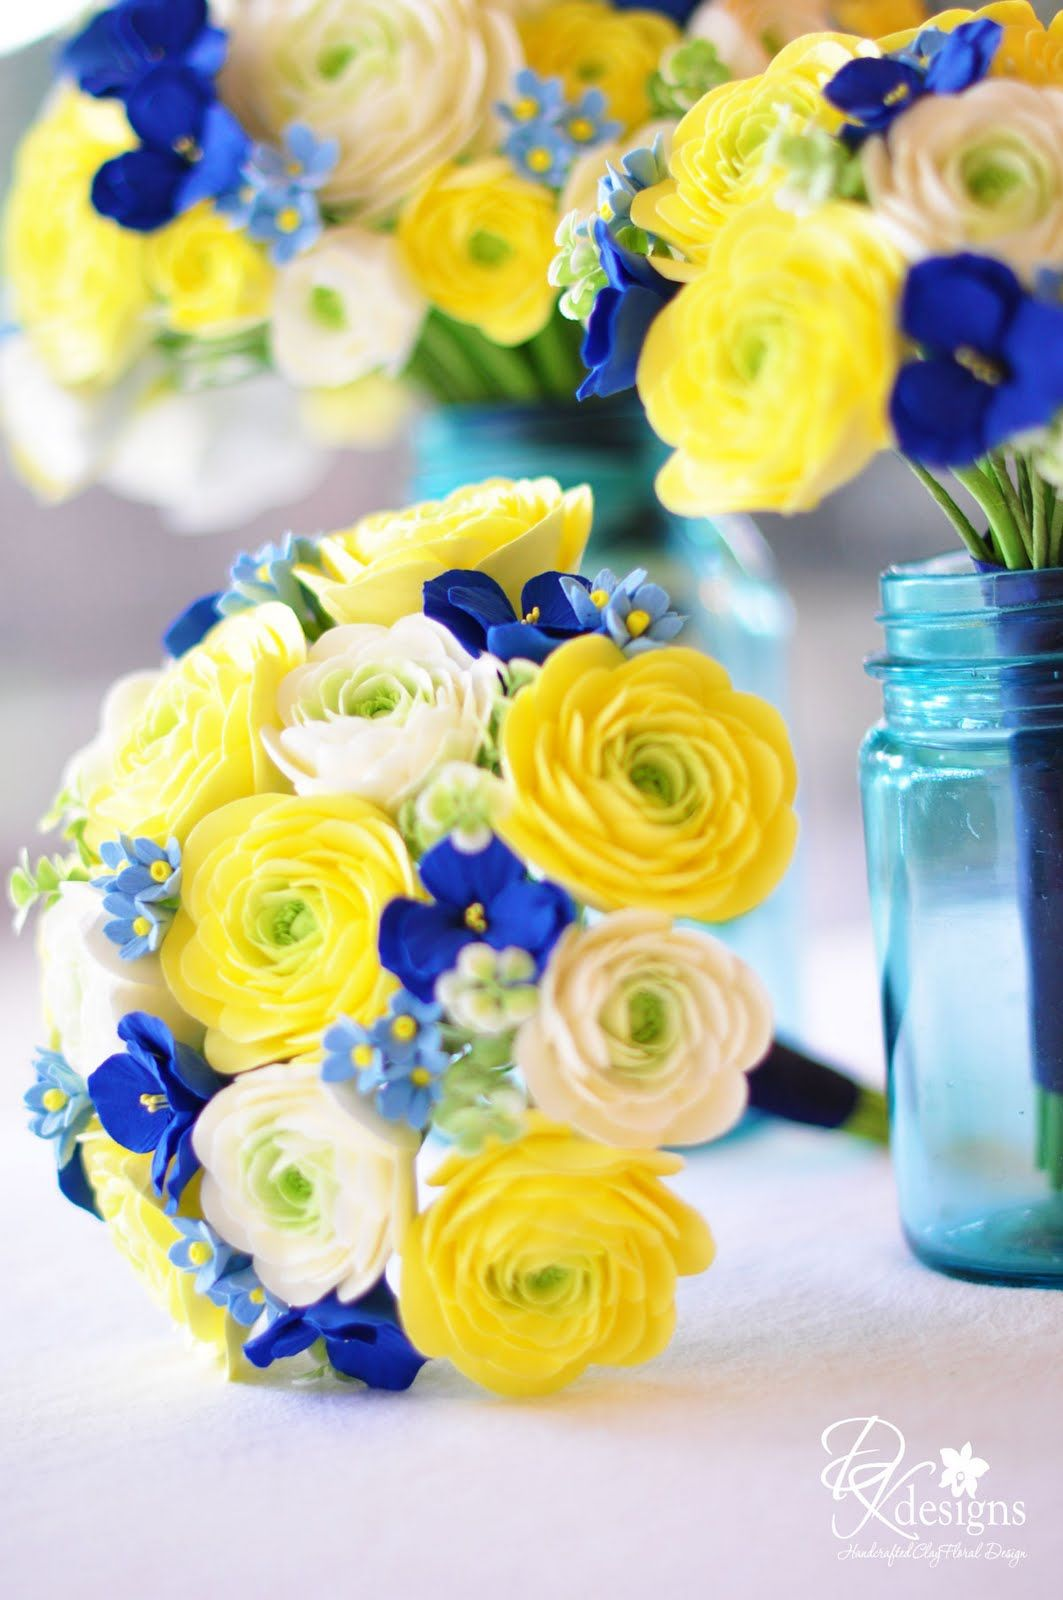 Blue and yellow wedding flowers wedding invitations which blue and yellow wedding flowers wedding invitations which also highlighted the blues dhlflorist Image collections